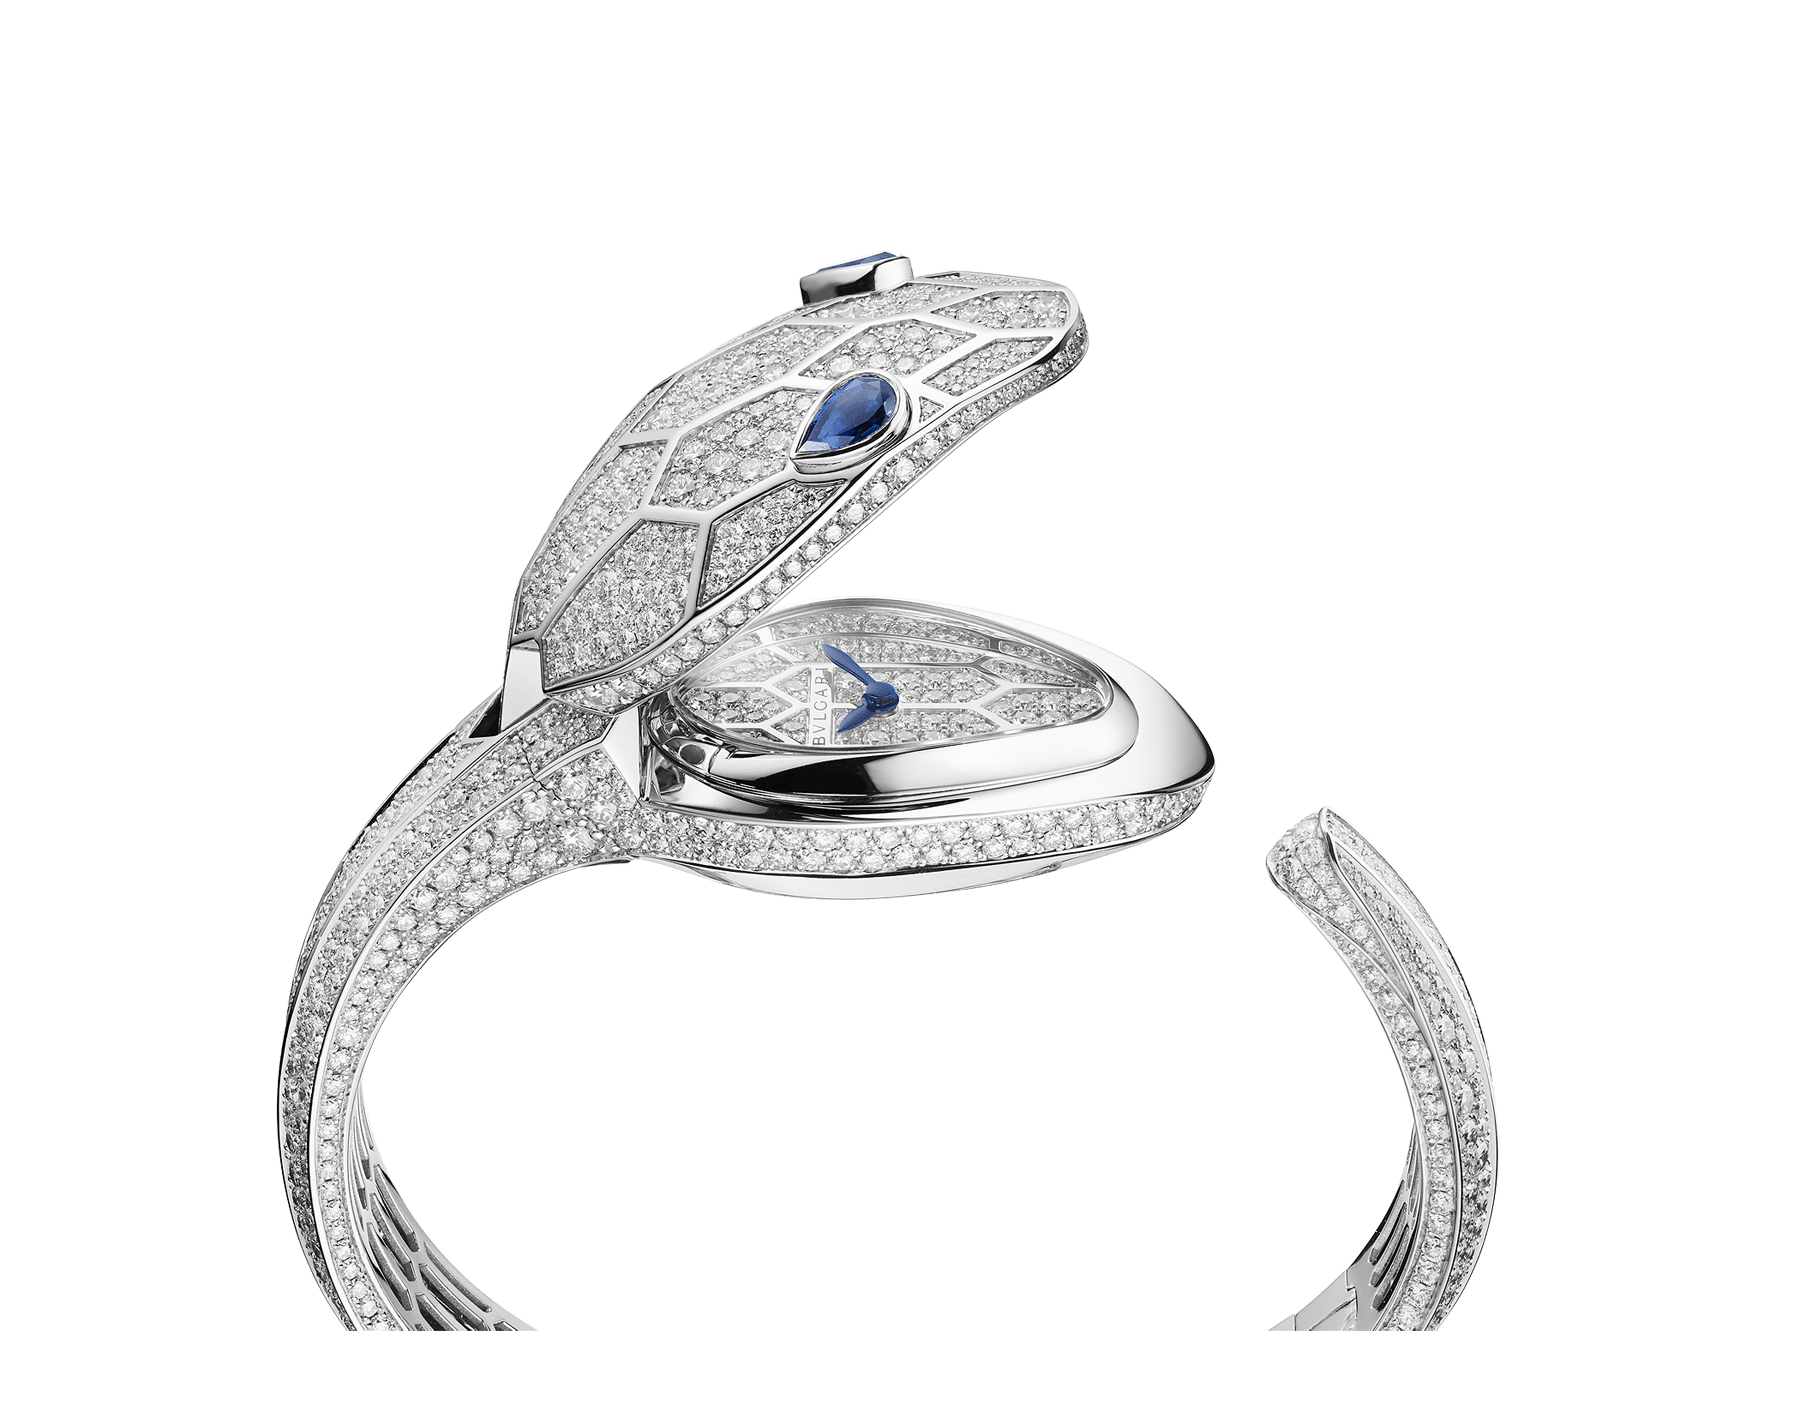 Serpenti Misteriosi Secret Watch in 18 kt white gold case and bangle bracelet, both set with round brilliant-cut diamonds, diamond full pavé dial and pear-shaped sapphire eyes. Small size 102989 image 3